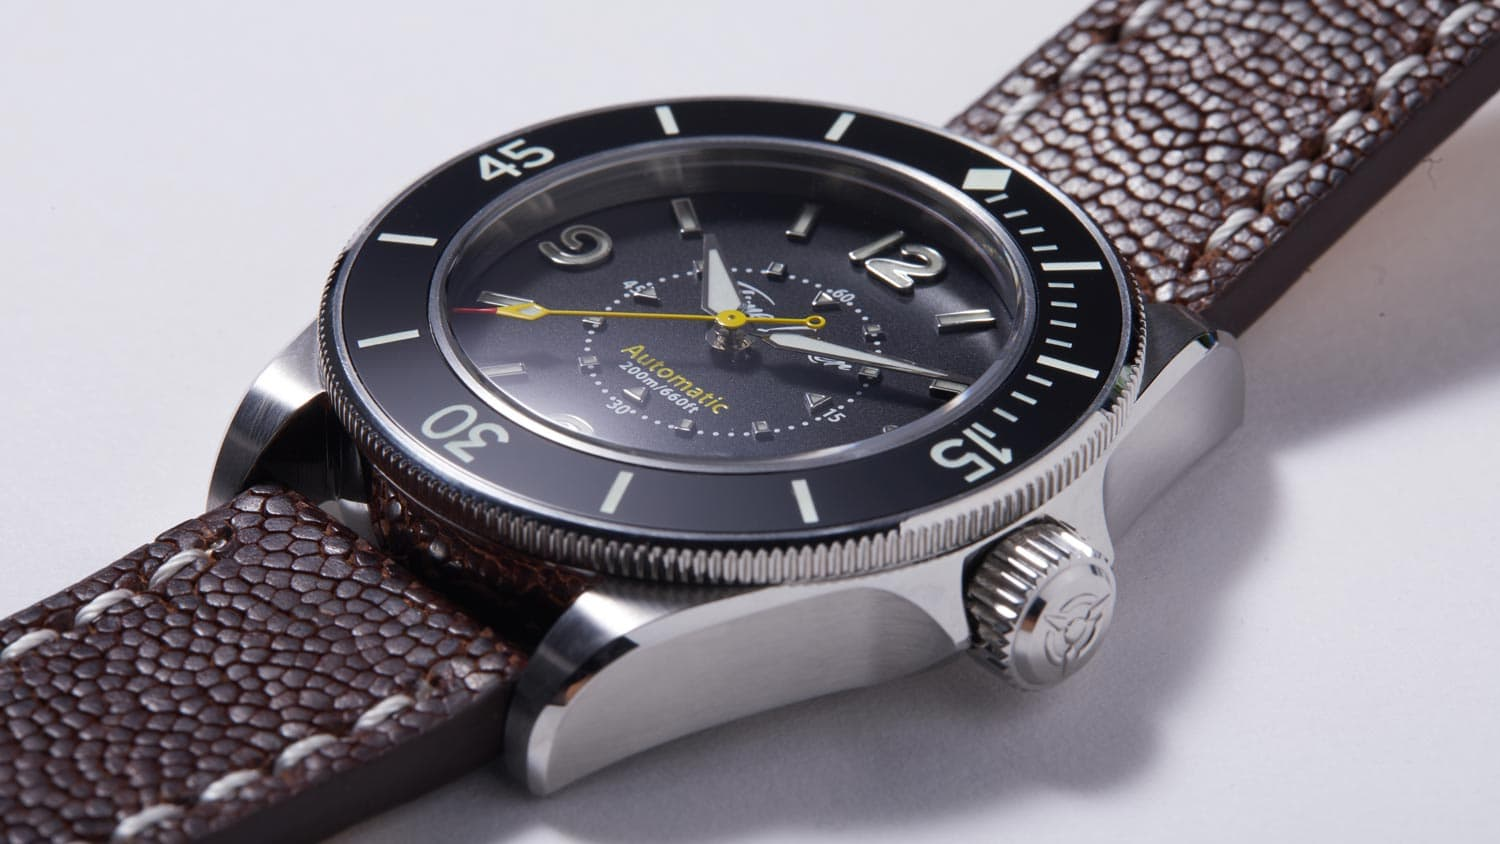 Diving watch ceramic bezel